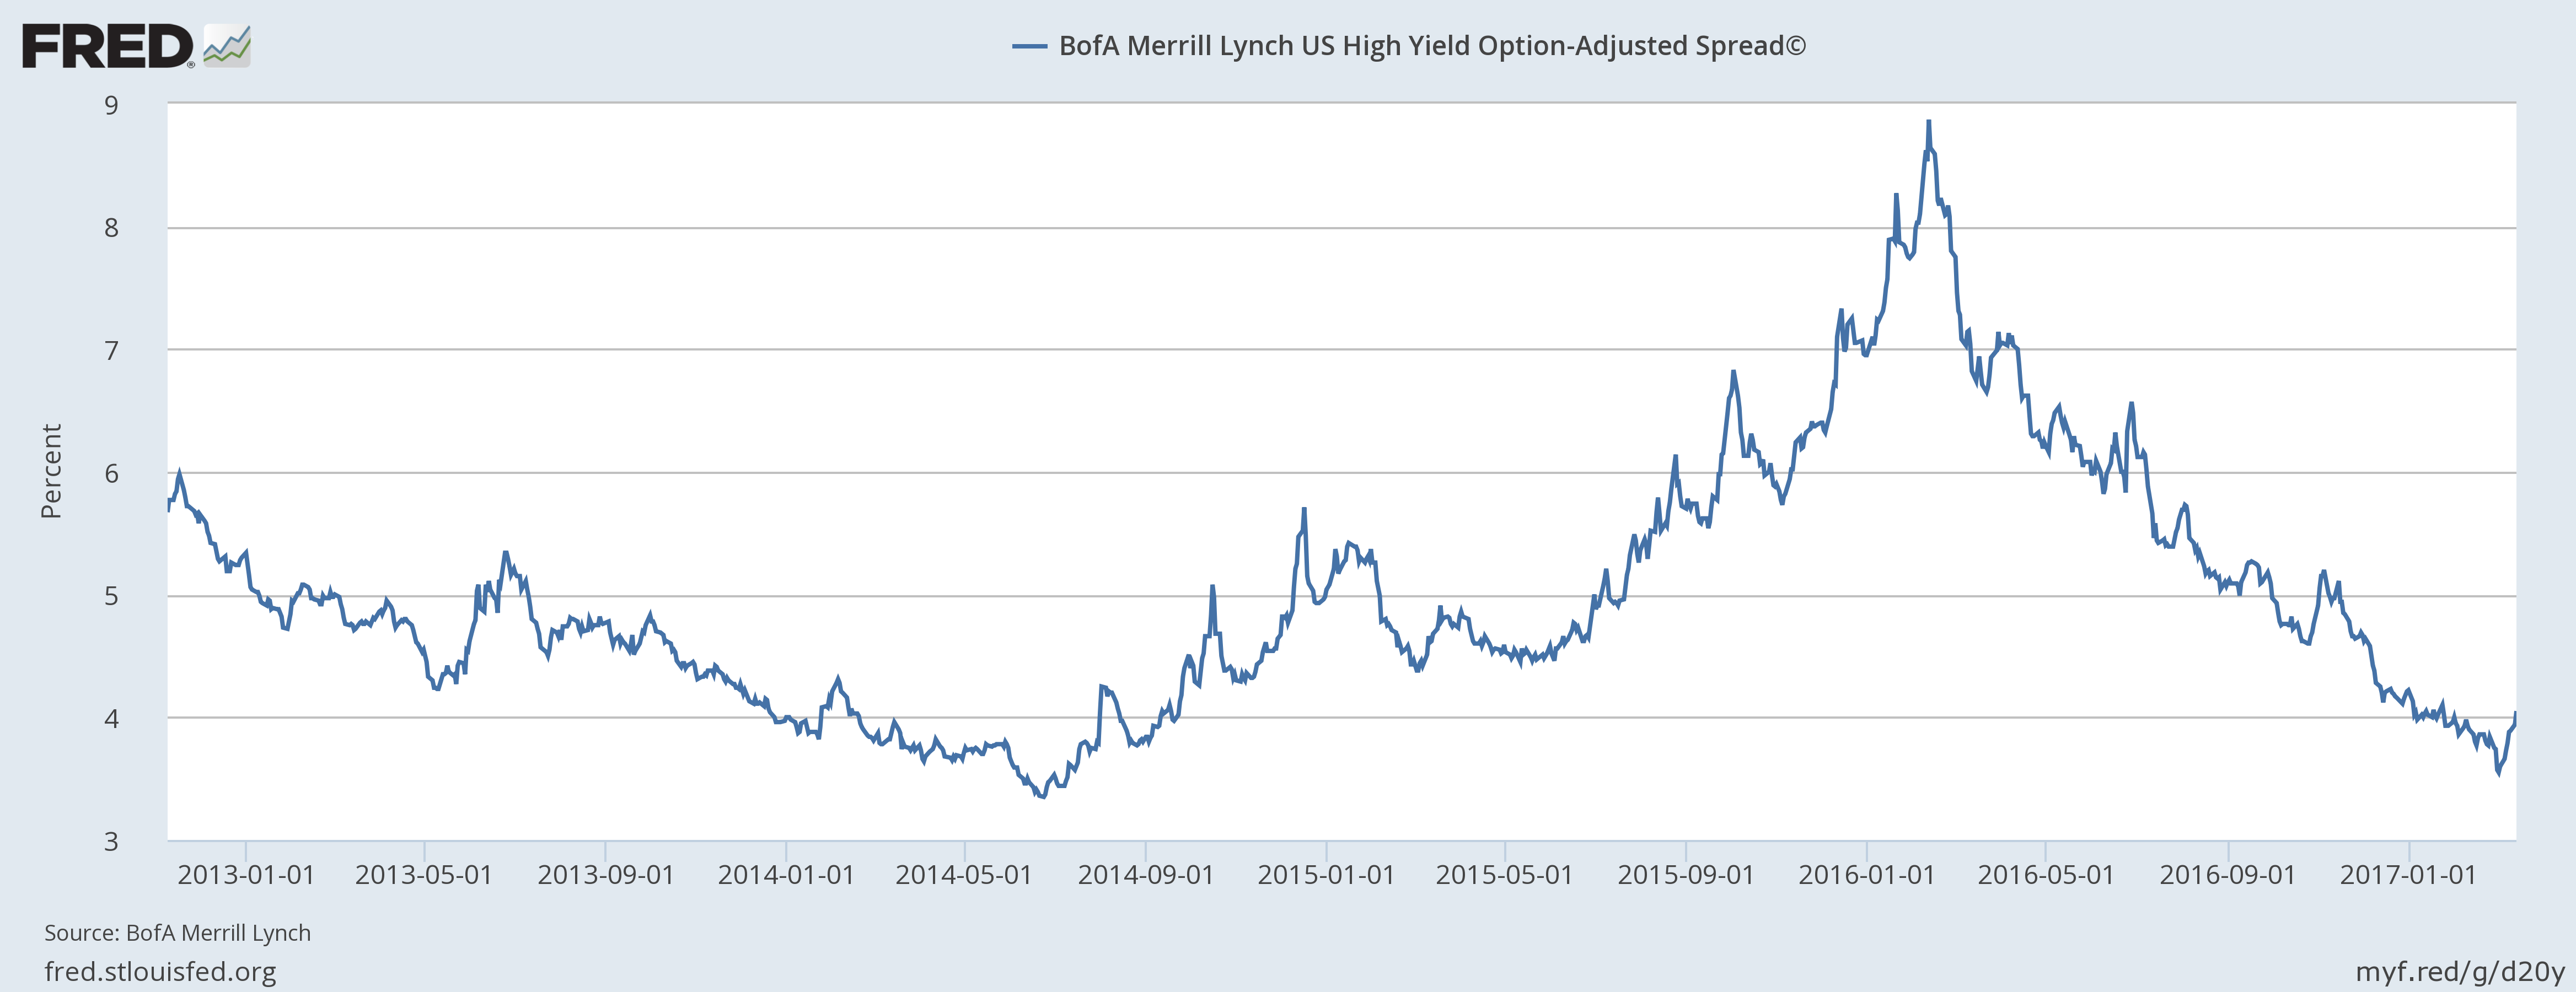 BofA Merrill Lynch US High Yield Option-Adjusted Spread, Jan 2013 - 2017